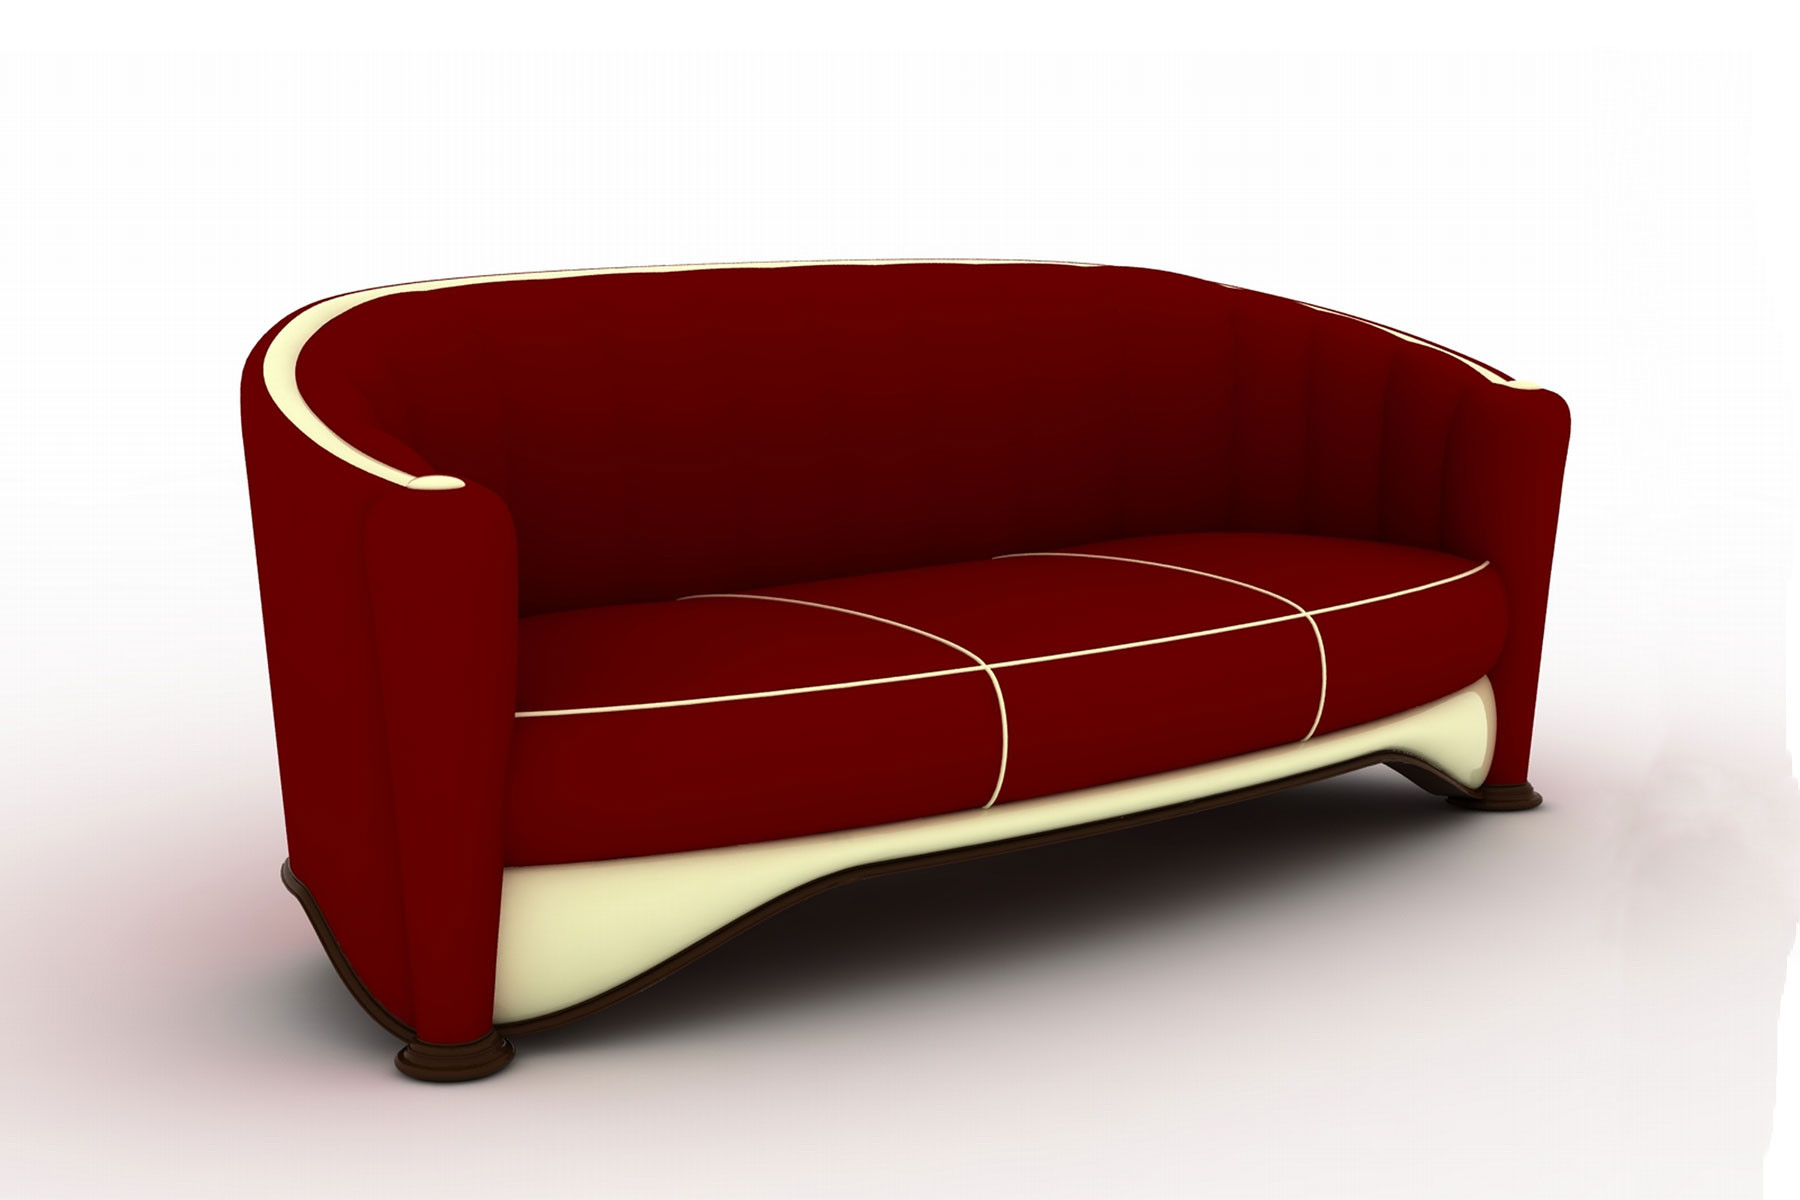 art deco sofas uk how to clean sofa stains the chesterfield